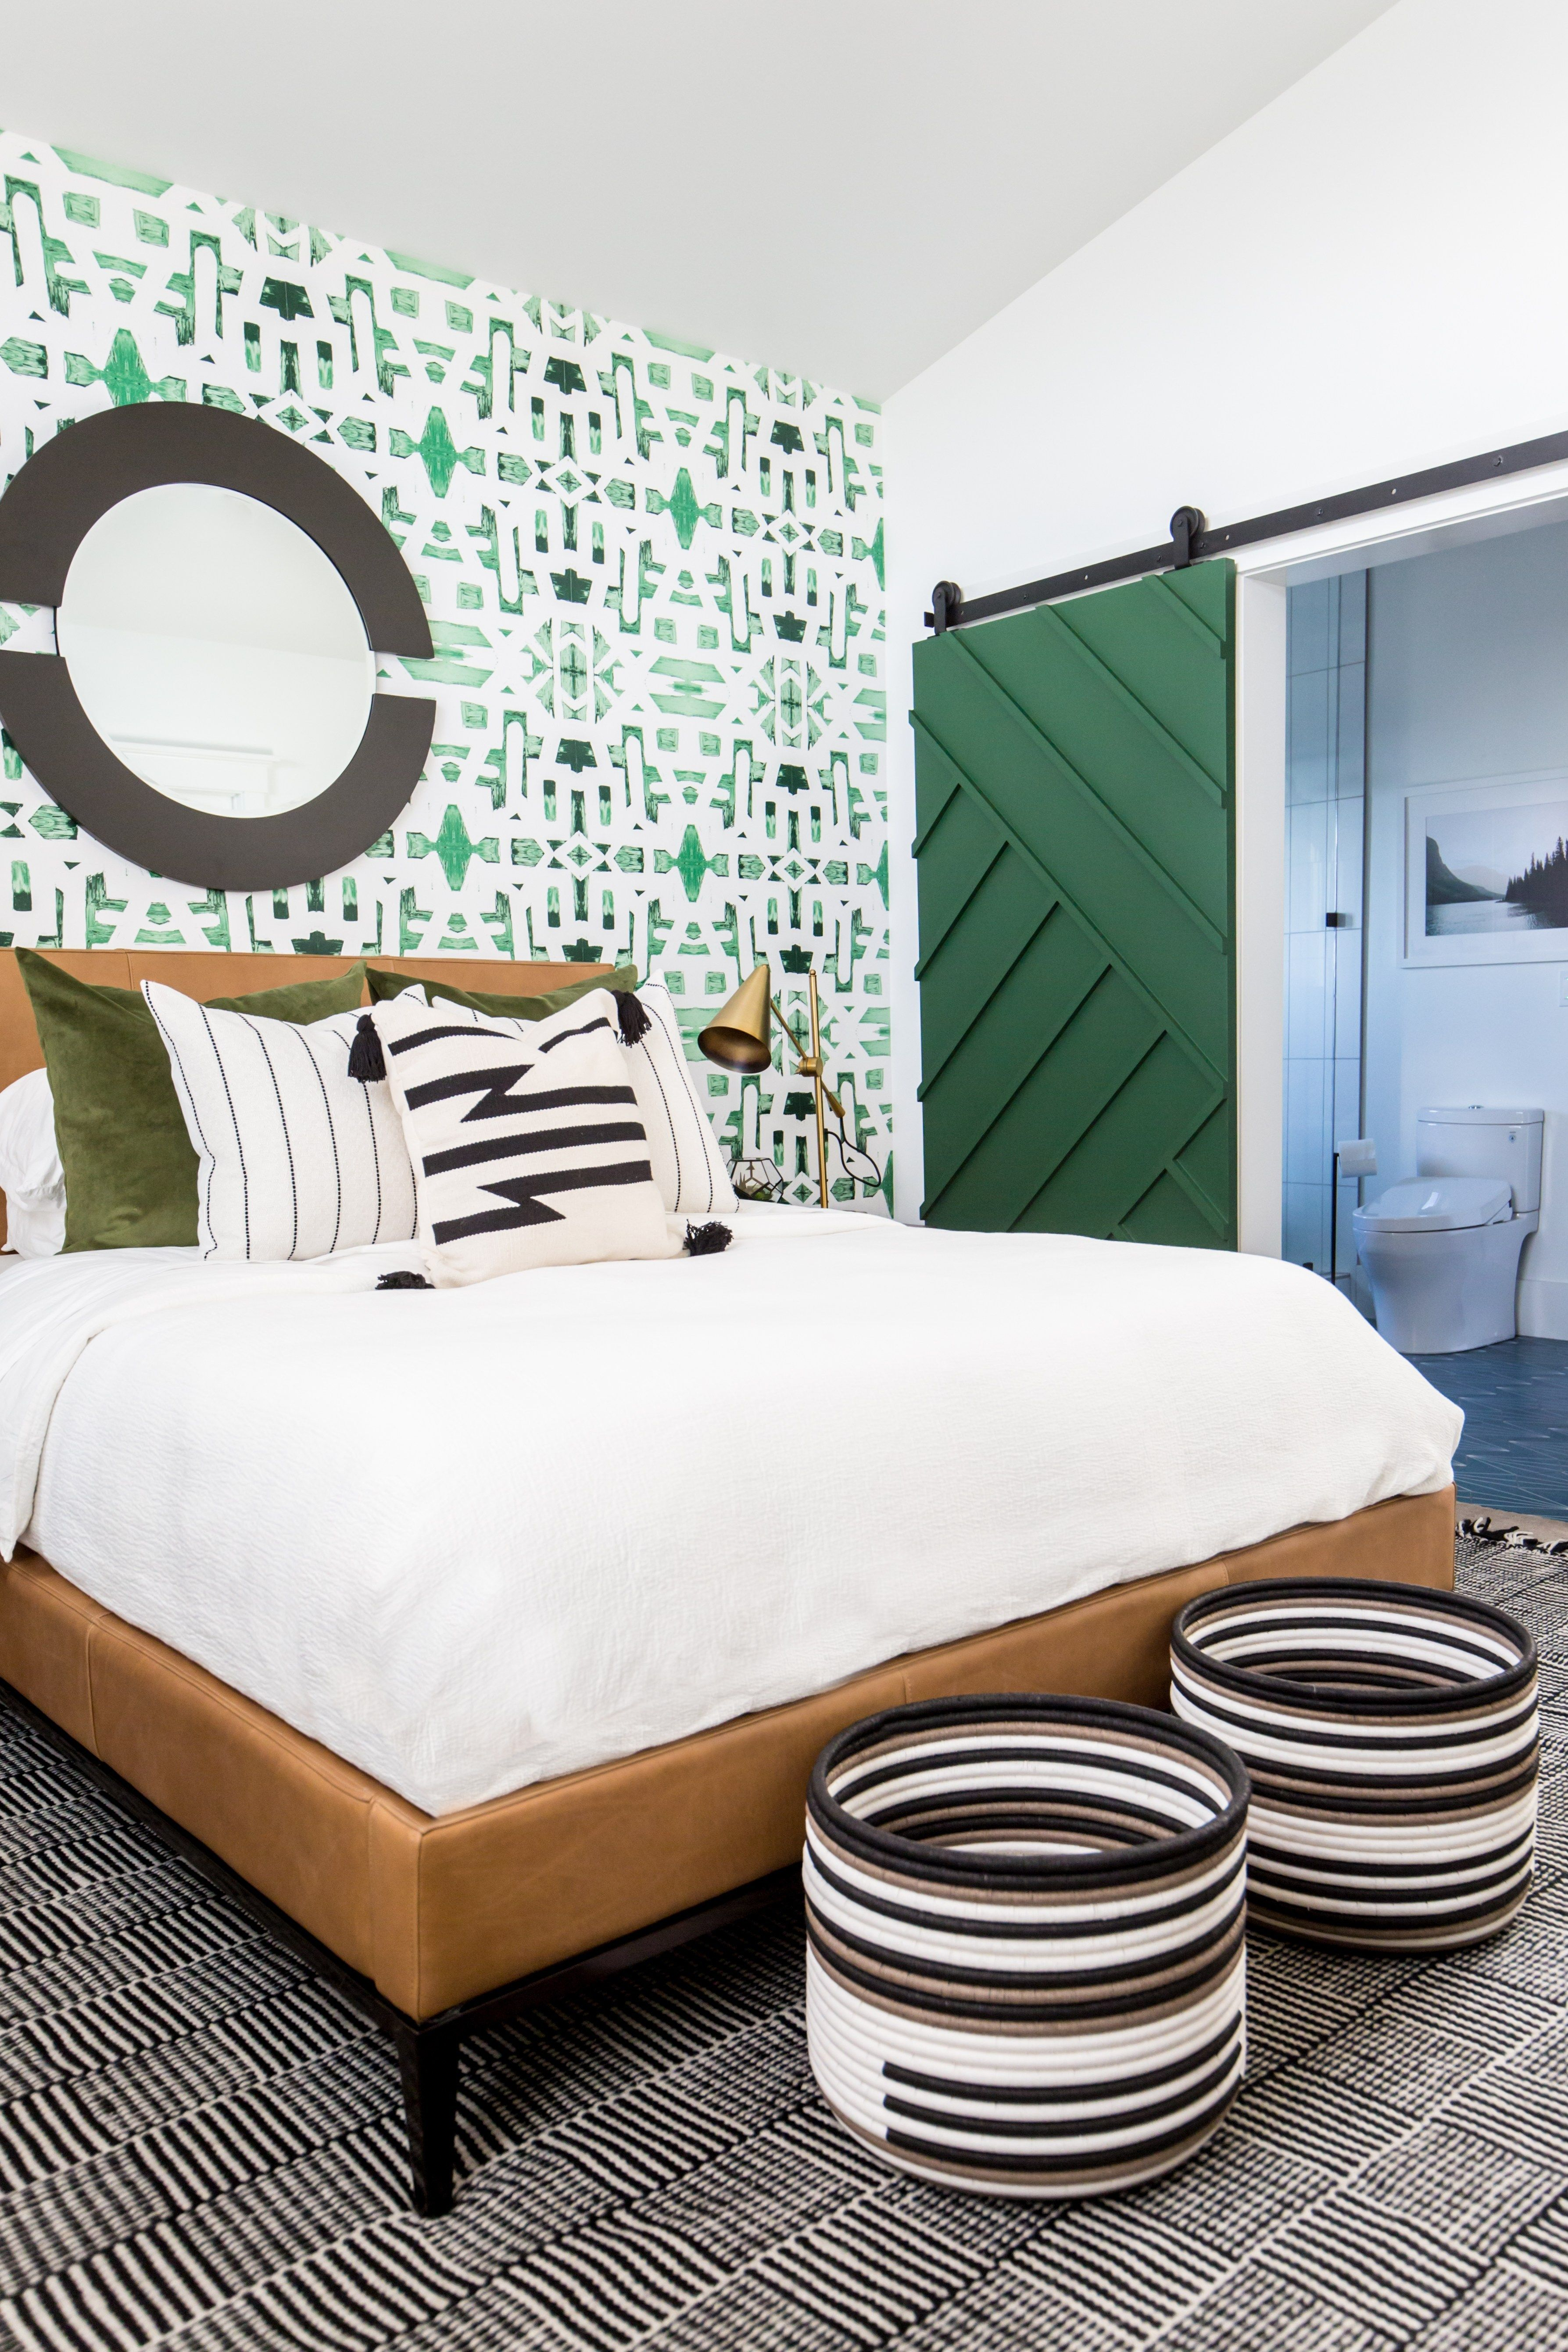 Graphic Green Wallpaper On The Back Wall Wood Paneled Ceiling Leather Bed Frame And Headboard Pi Bedroom Headboard Barndoor Headboard Headboards For Beds